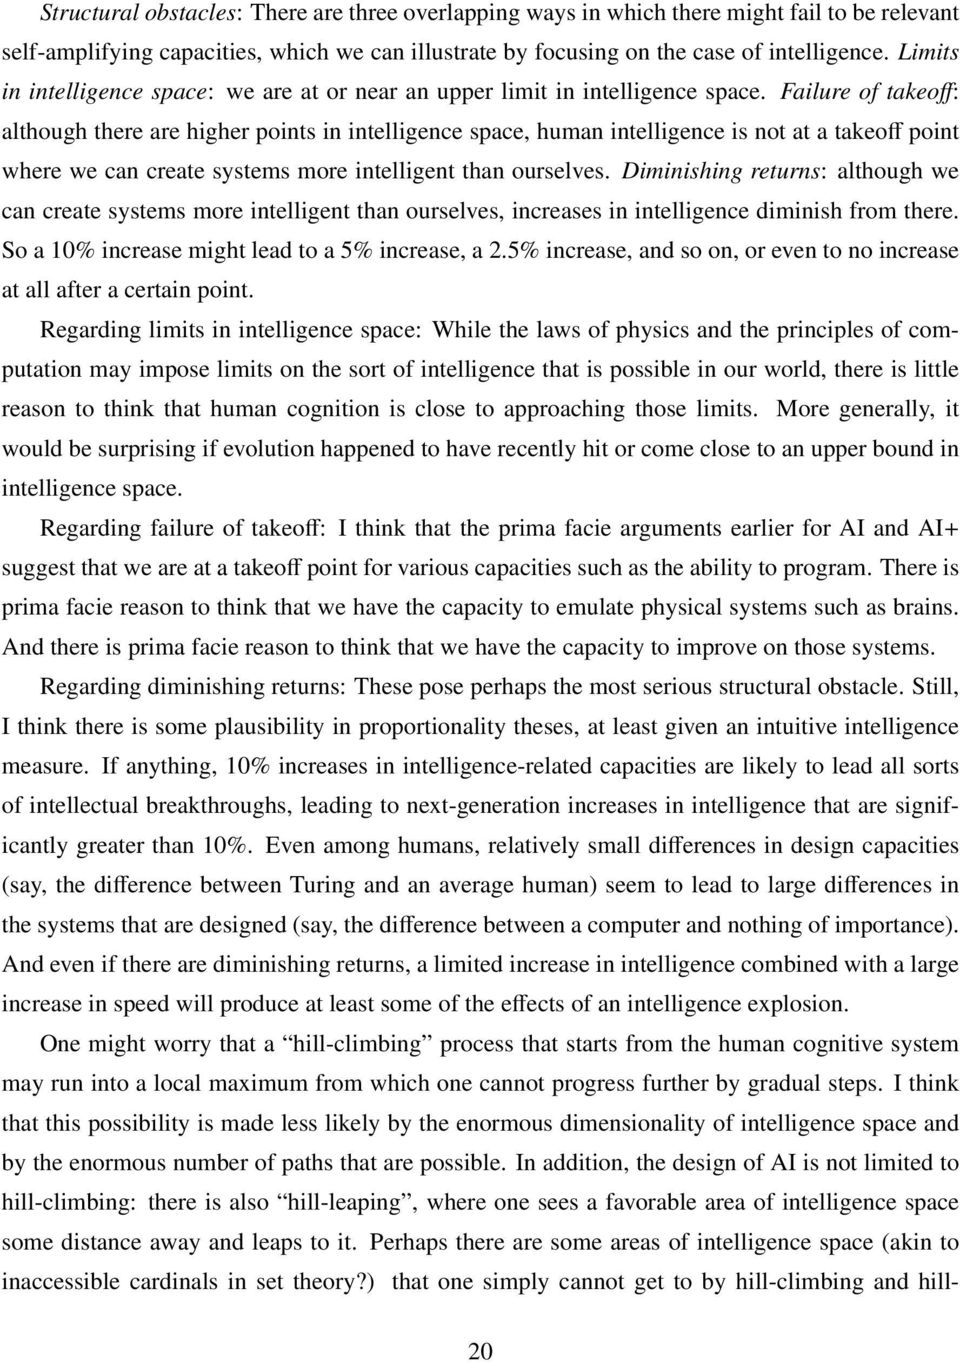 Failure of takeoff: although there are higher points in intelligence space, human intelligence is not at a takeoff point where we can create systems more intelligent than ourselves.